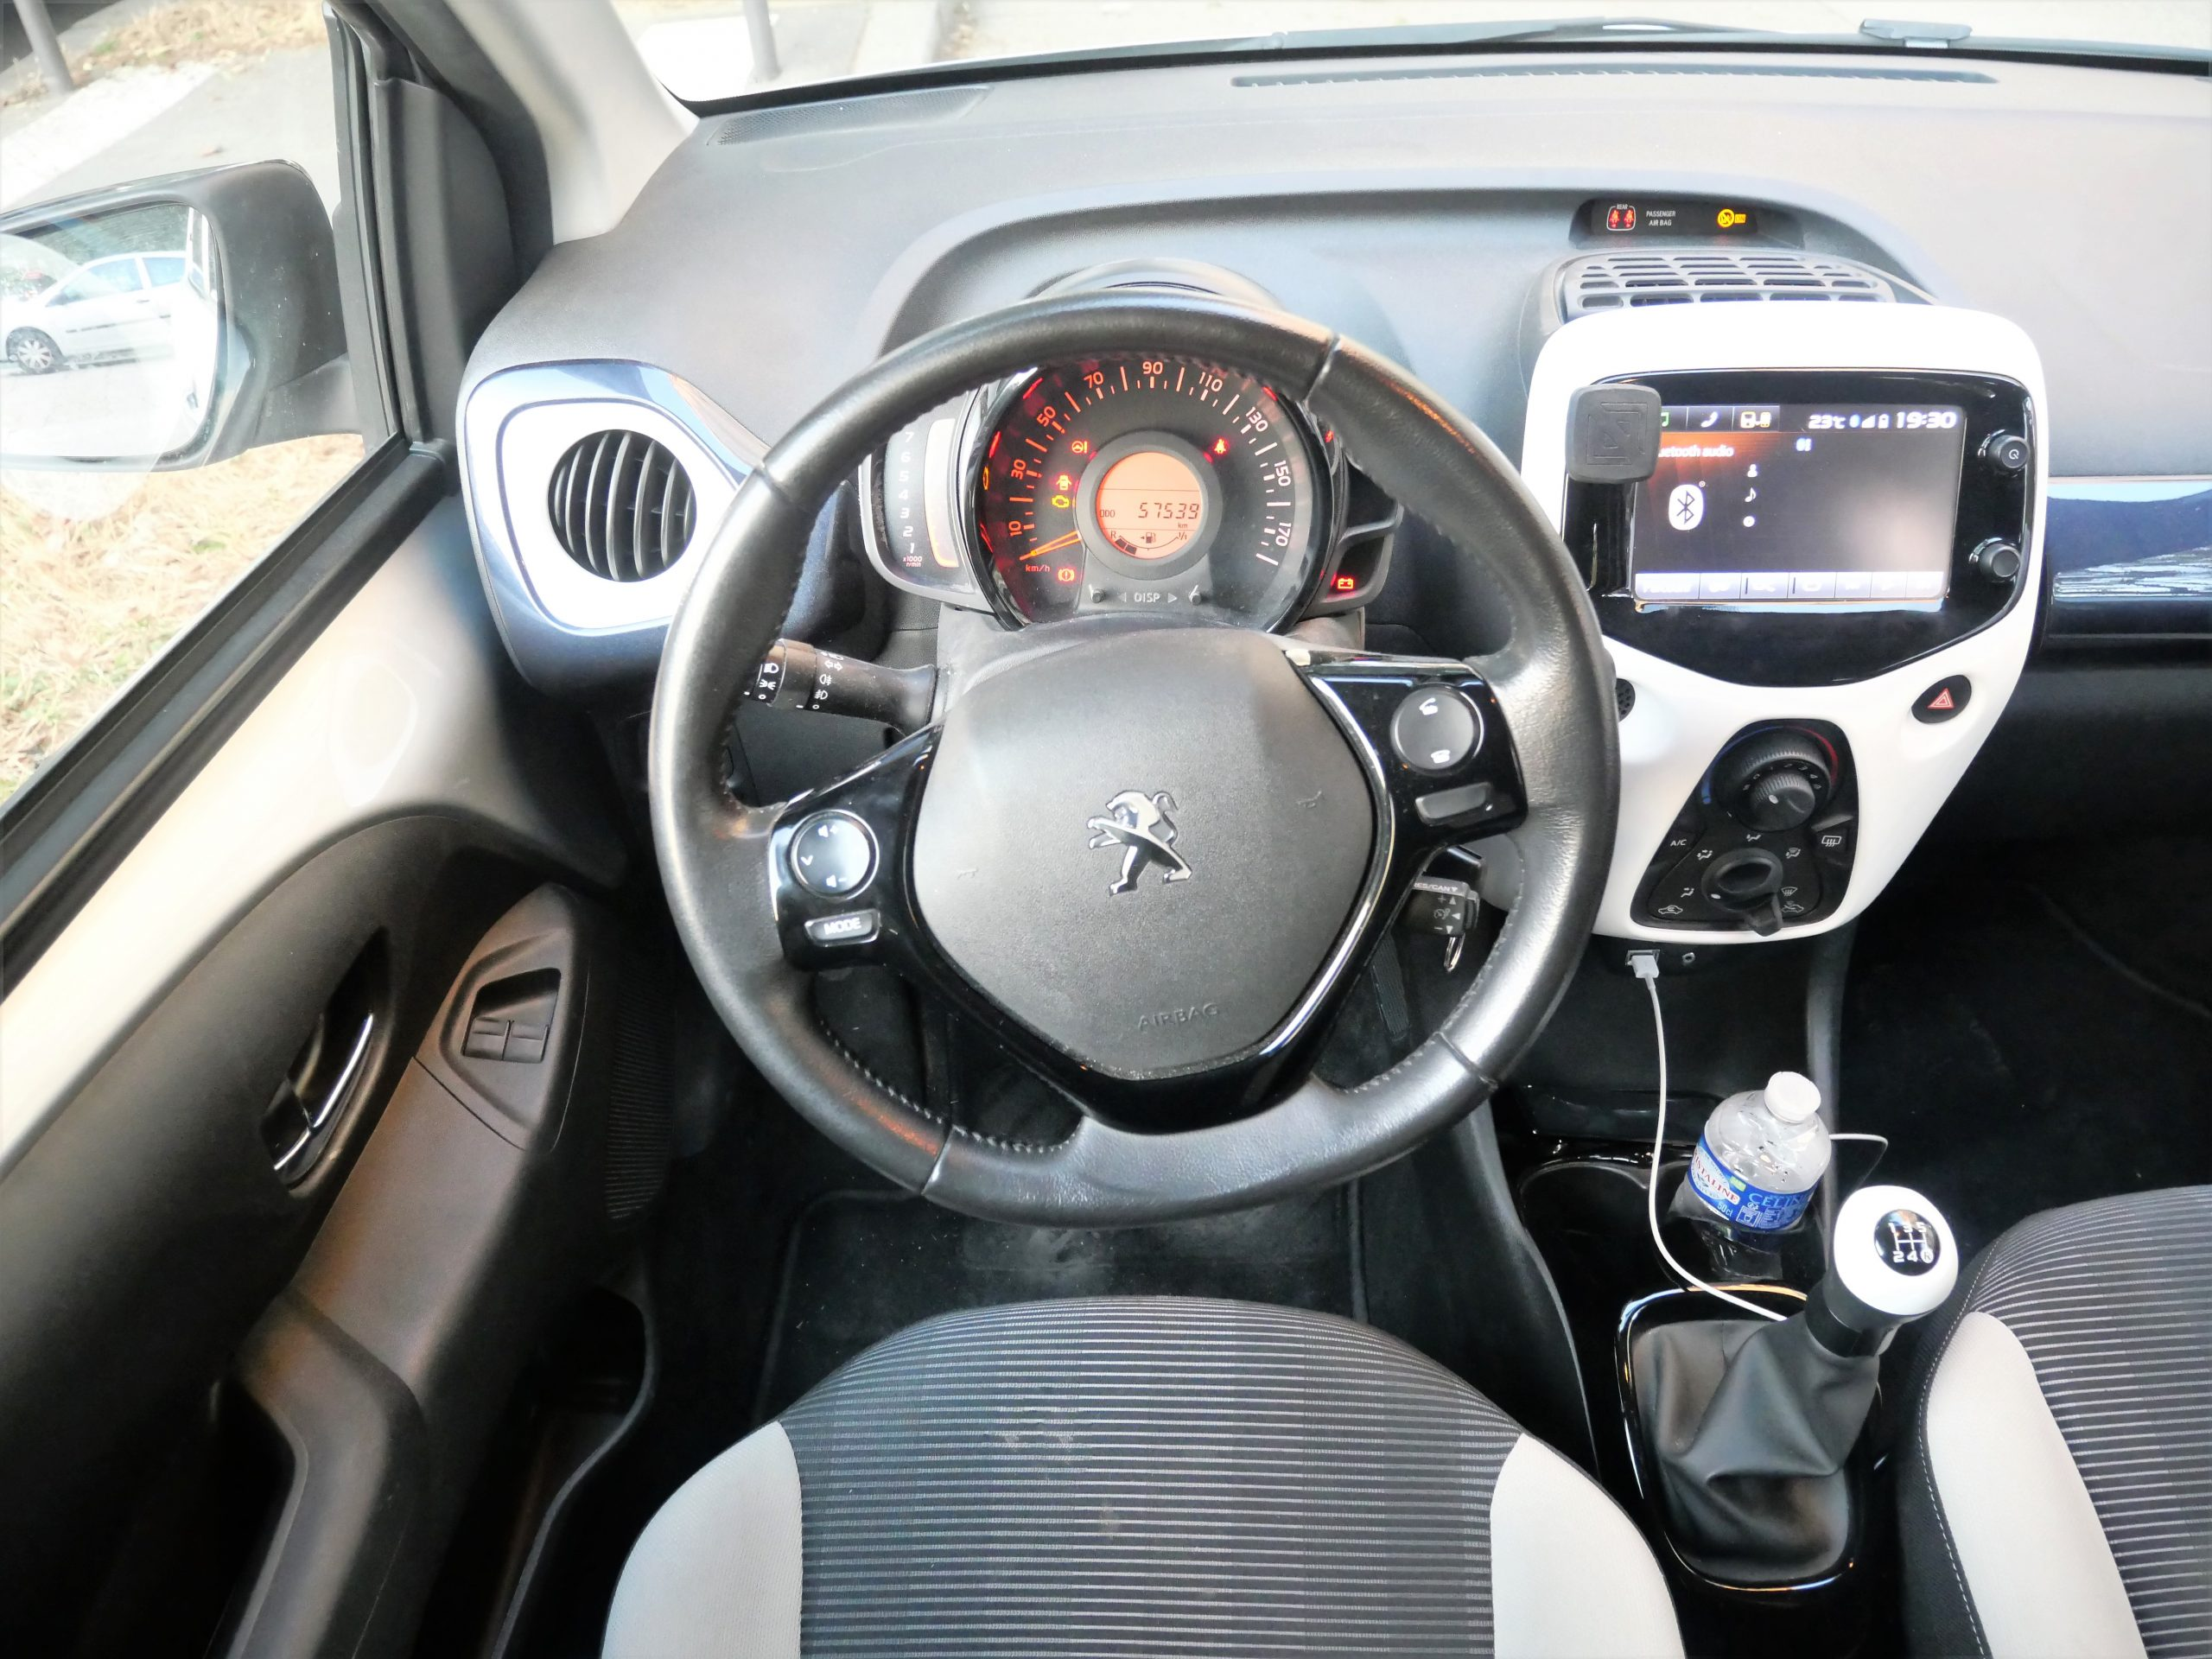 PEUGEOT 108 Collection 1.2 VTi 82 ch 13